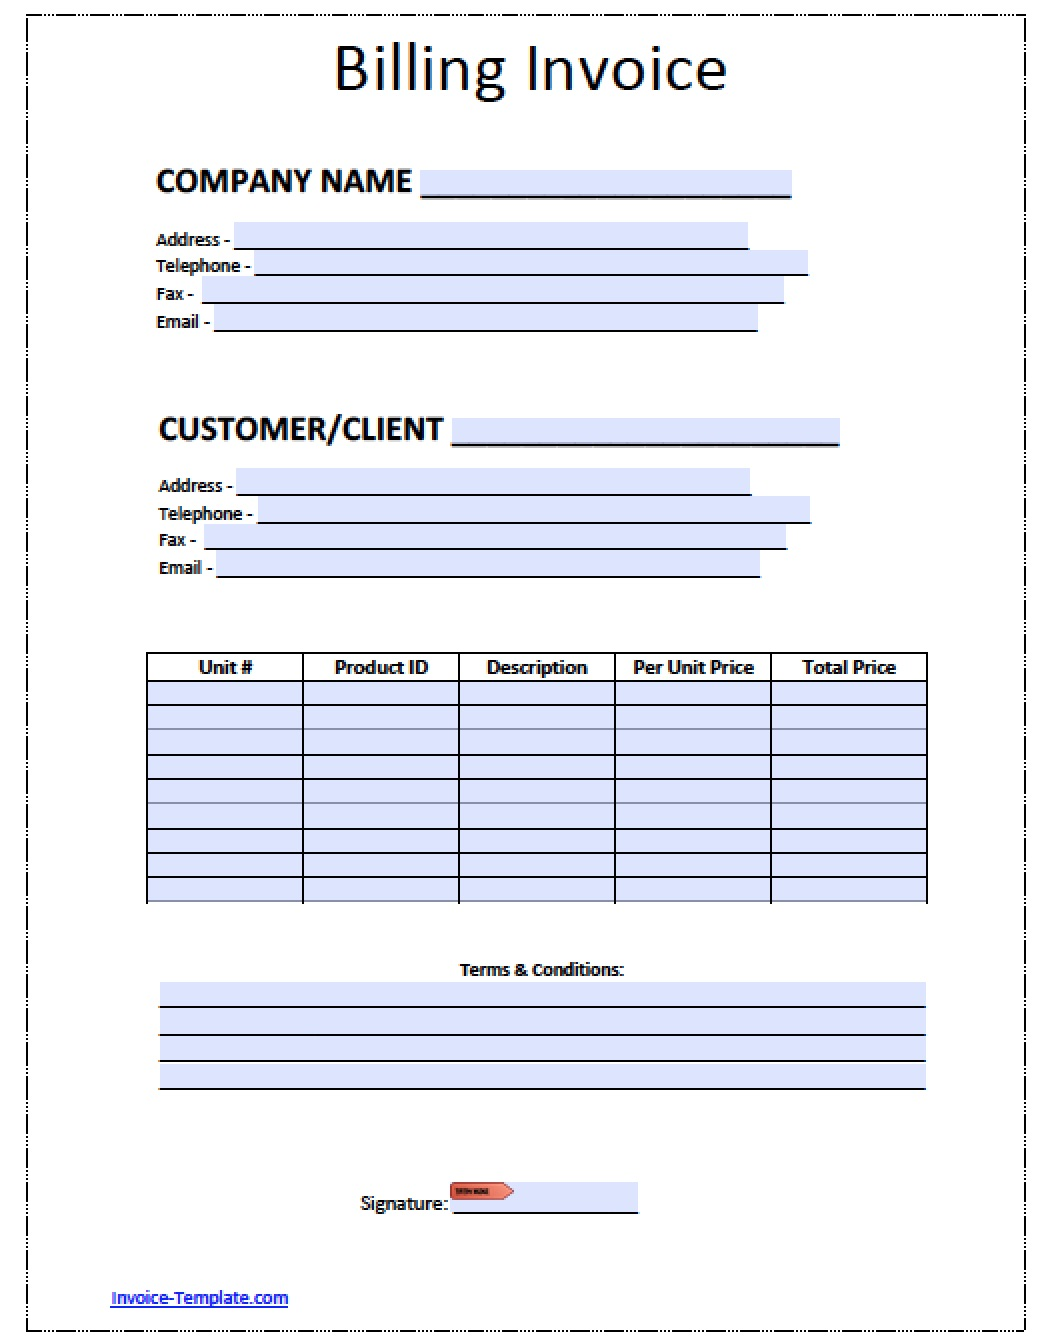 Free Billing Invoice Template Excel PDF Word Doc - Free invoicing template shop now pay later online stores